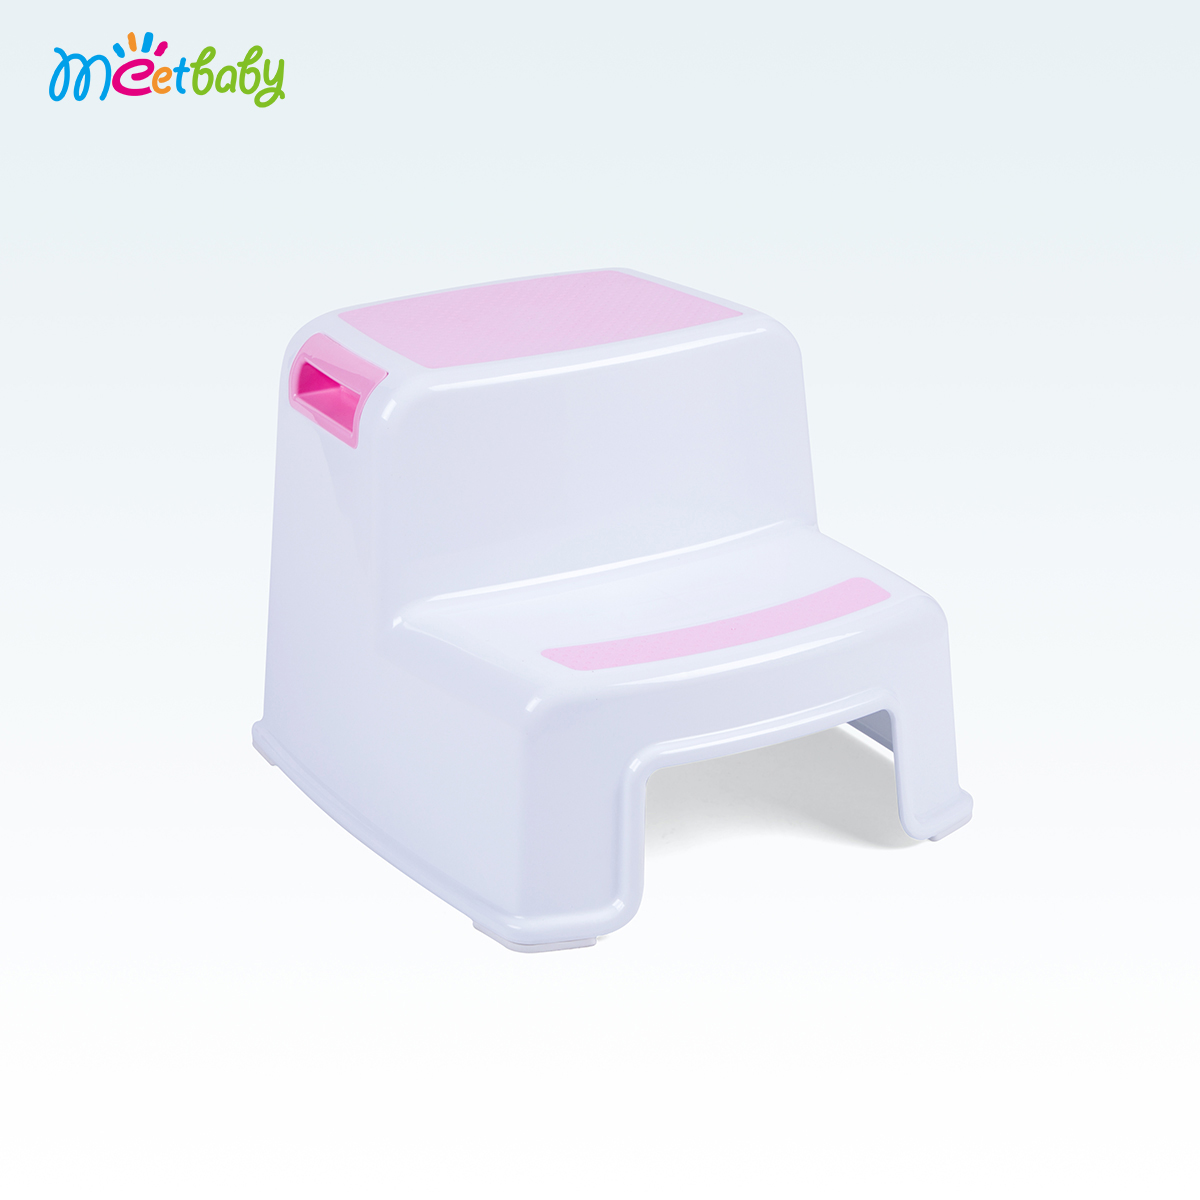 Magnificent 2 Step Stool For Kids Toddler Stool For Toilet Potty Training Slip Resistant Soft Grip For Safety Bathroom And Kitchen Stool Buy Step Stool For Dailytribune Chair Design For Home Dailytribuneorg